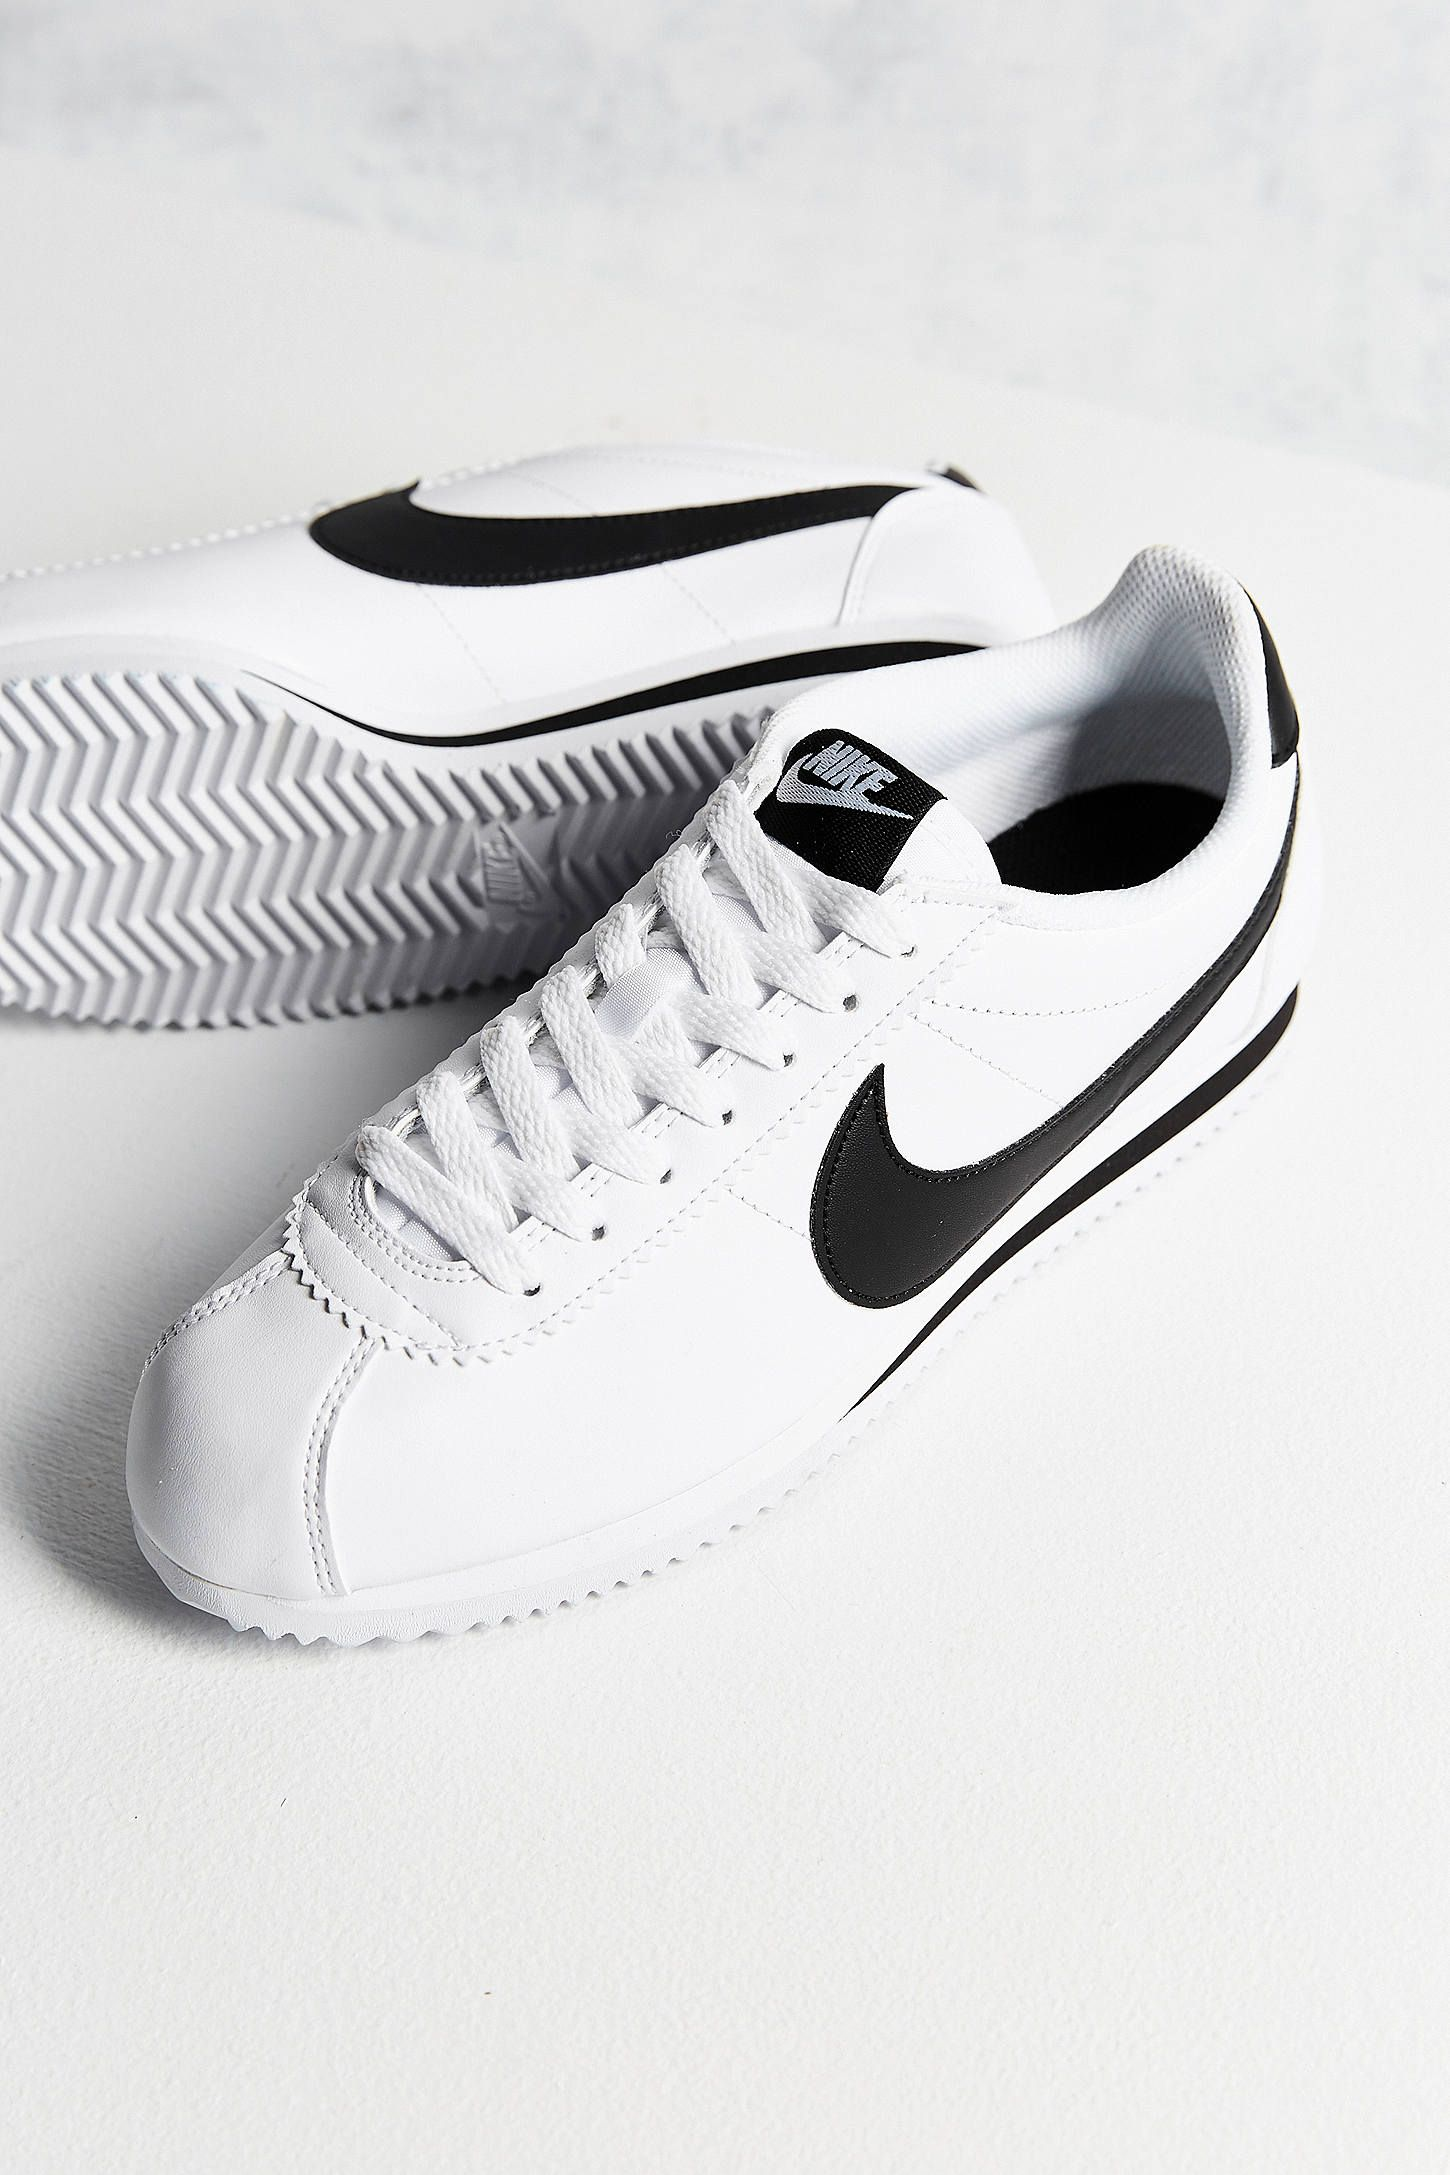 8fde2a23870f1 Shop Nike Classic Cortez Sneaker at Urban Outfitters today. We carry all the  latest styles